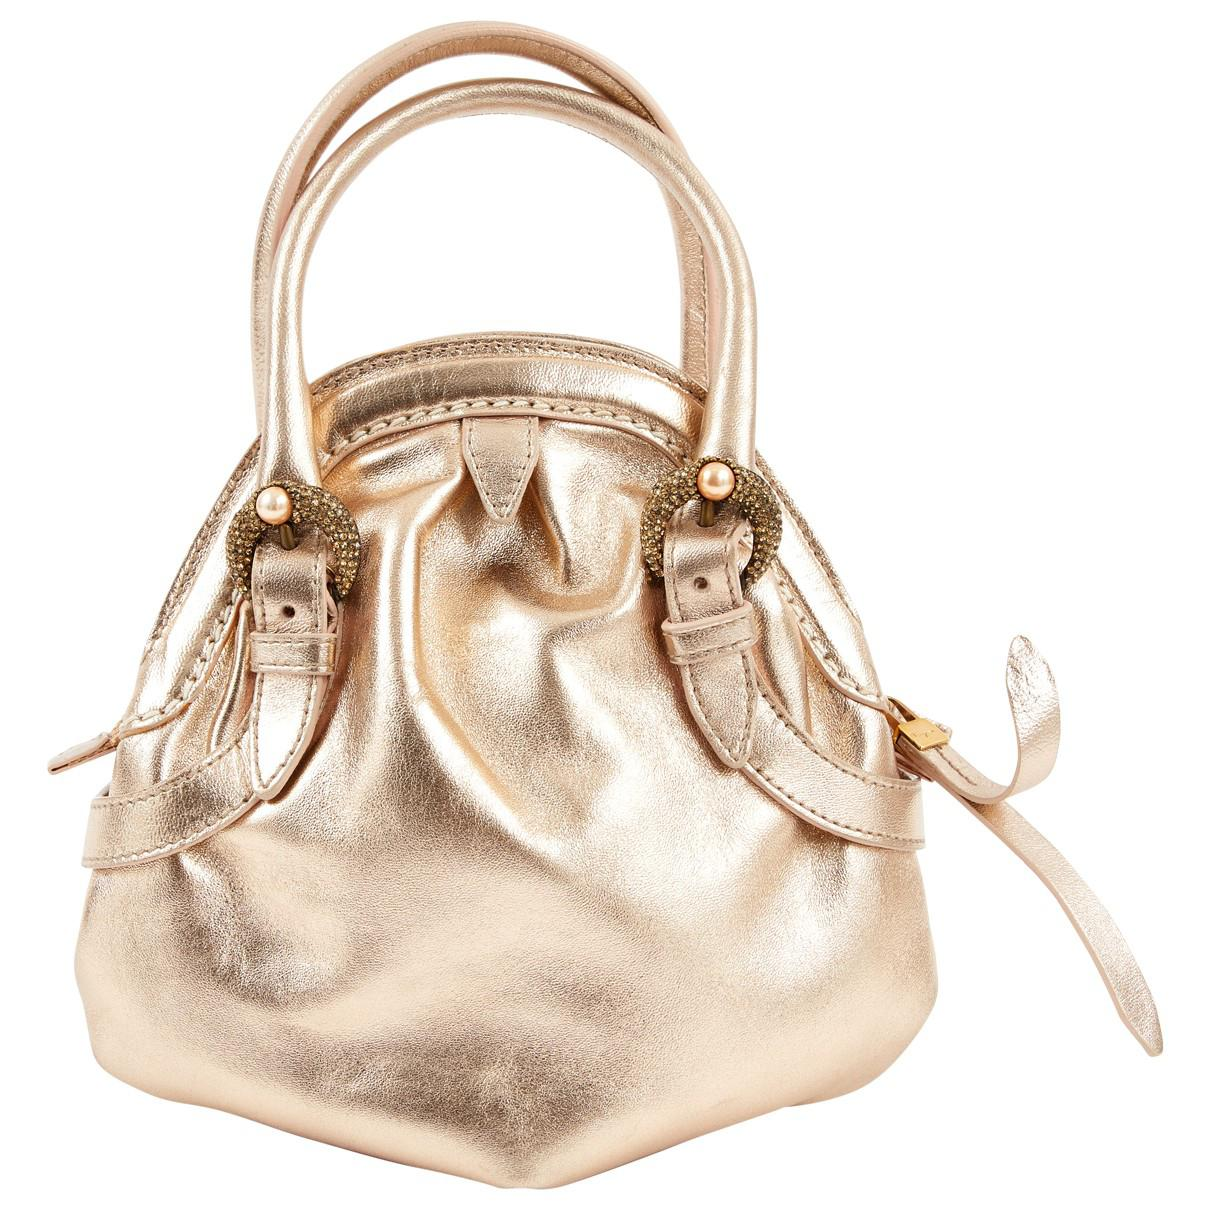 Lyst ferragamo pre owned gold leather handbags in metallic jpg 1210x1210  Silver and gold leather handbags 313c7fd60acca